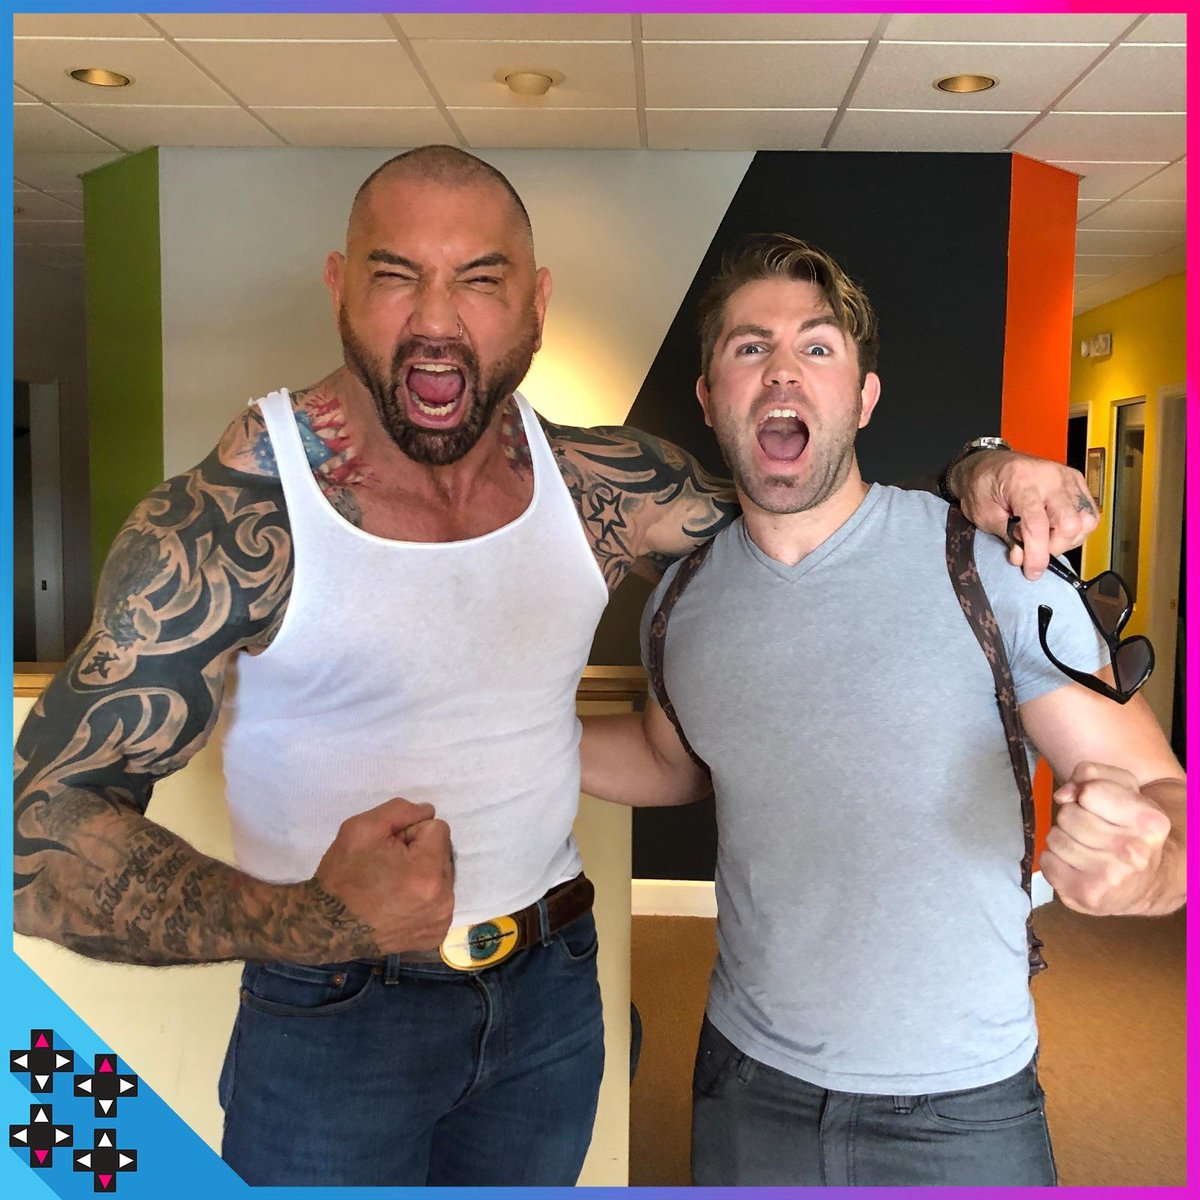 Get a look behind the scenes as The Animal is UNLEASHED when @DaveBautista joins @GearsofWar 5 as Marcus Fenix! https://www.youtube.com/watch?v=bDHjwydduPo&t=2s&sf219069532=1… Also, @MmmGorgeous got an EXCLUSIVE interview with #Batista and not @XavierWoodsPhD... https://www.youtube.com/watch?v=e6DW-MfkAbE&sf219069532=1… @Xbox #Gears5